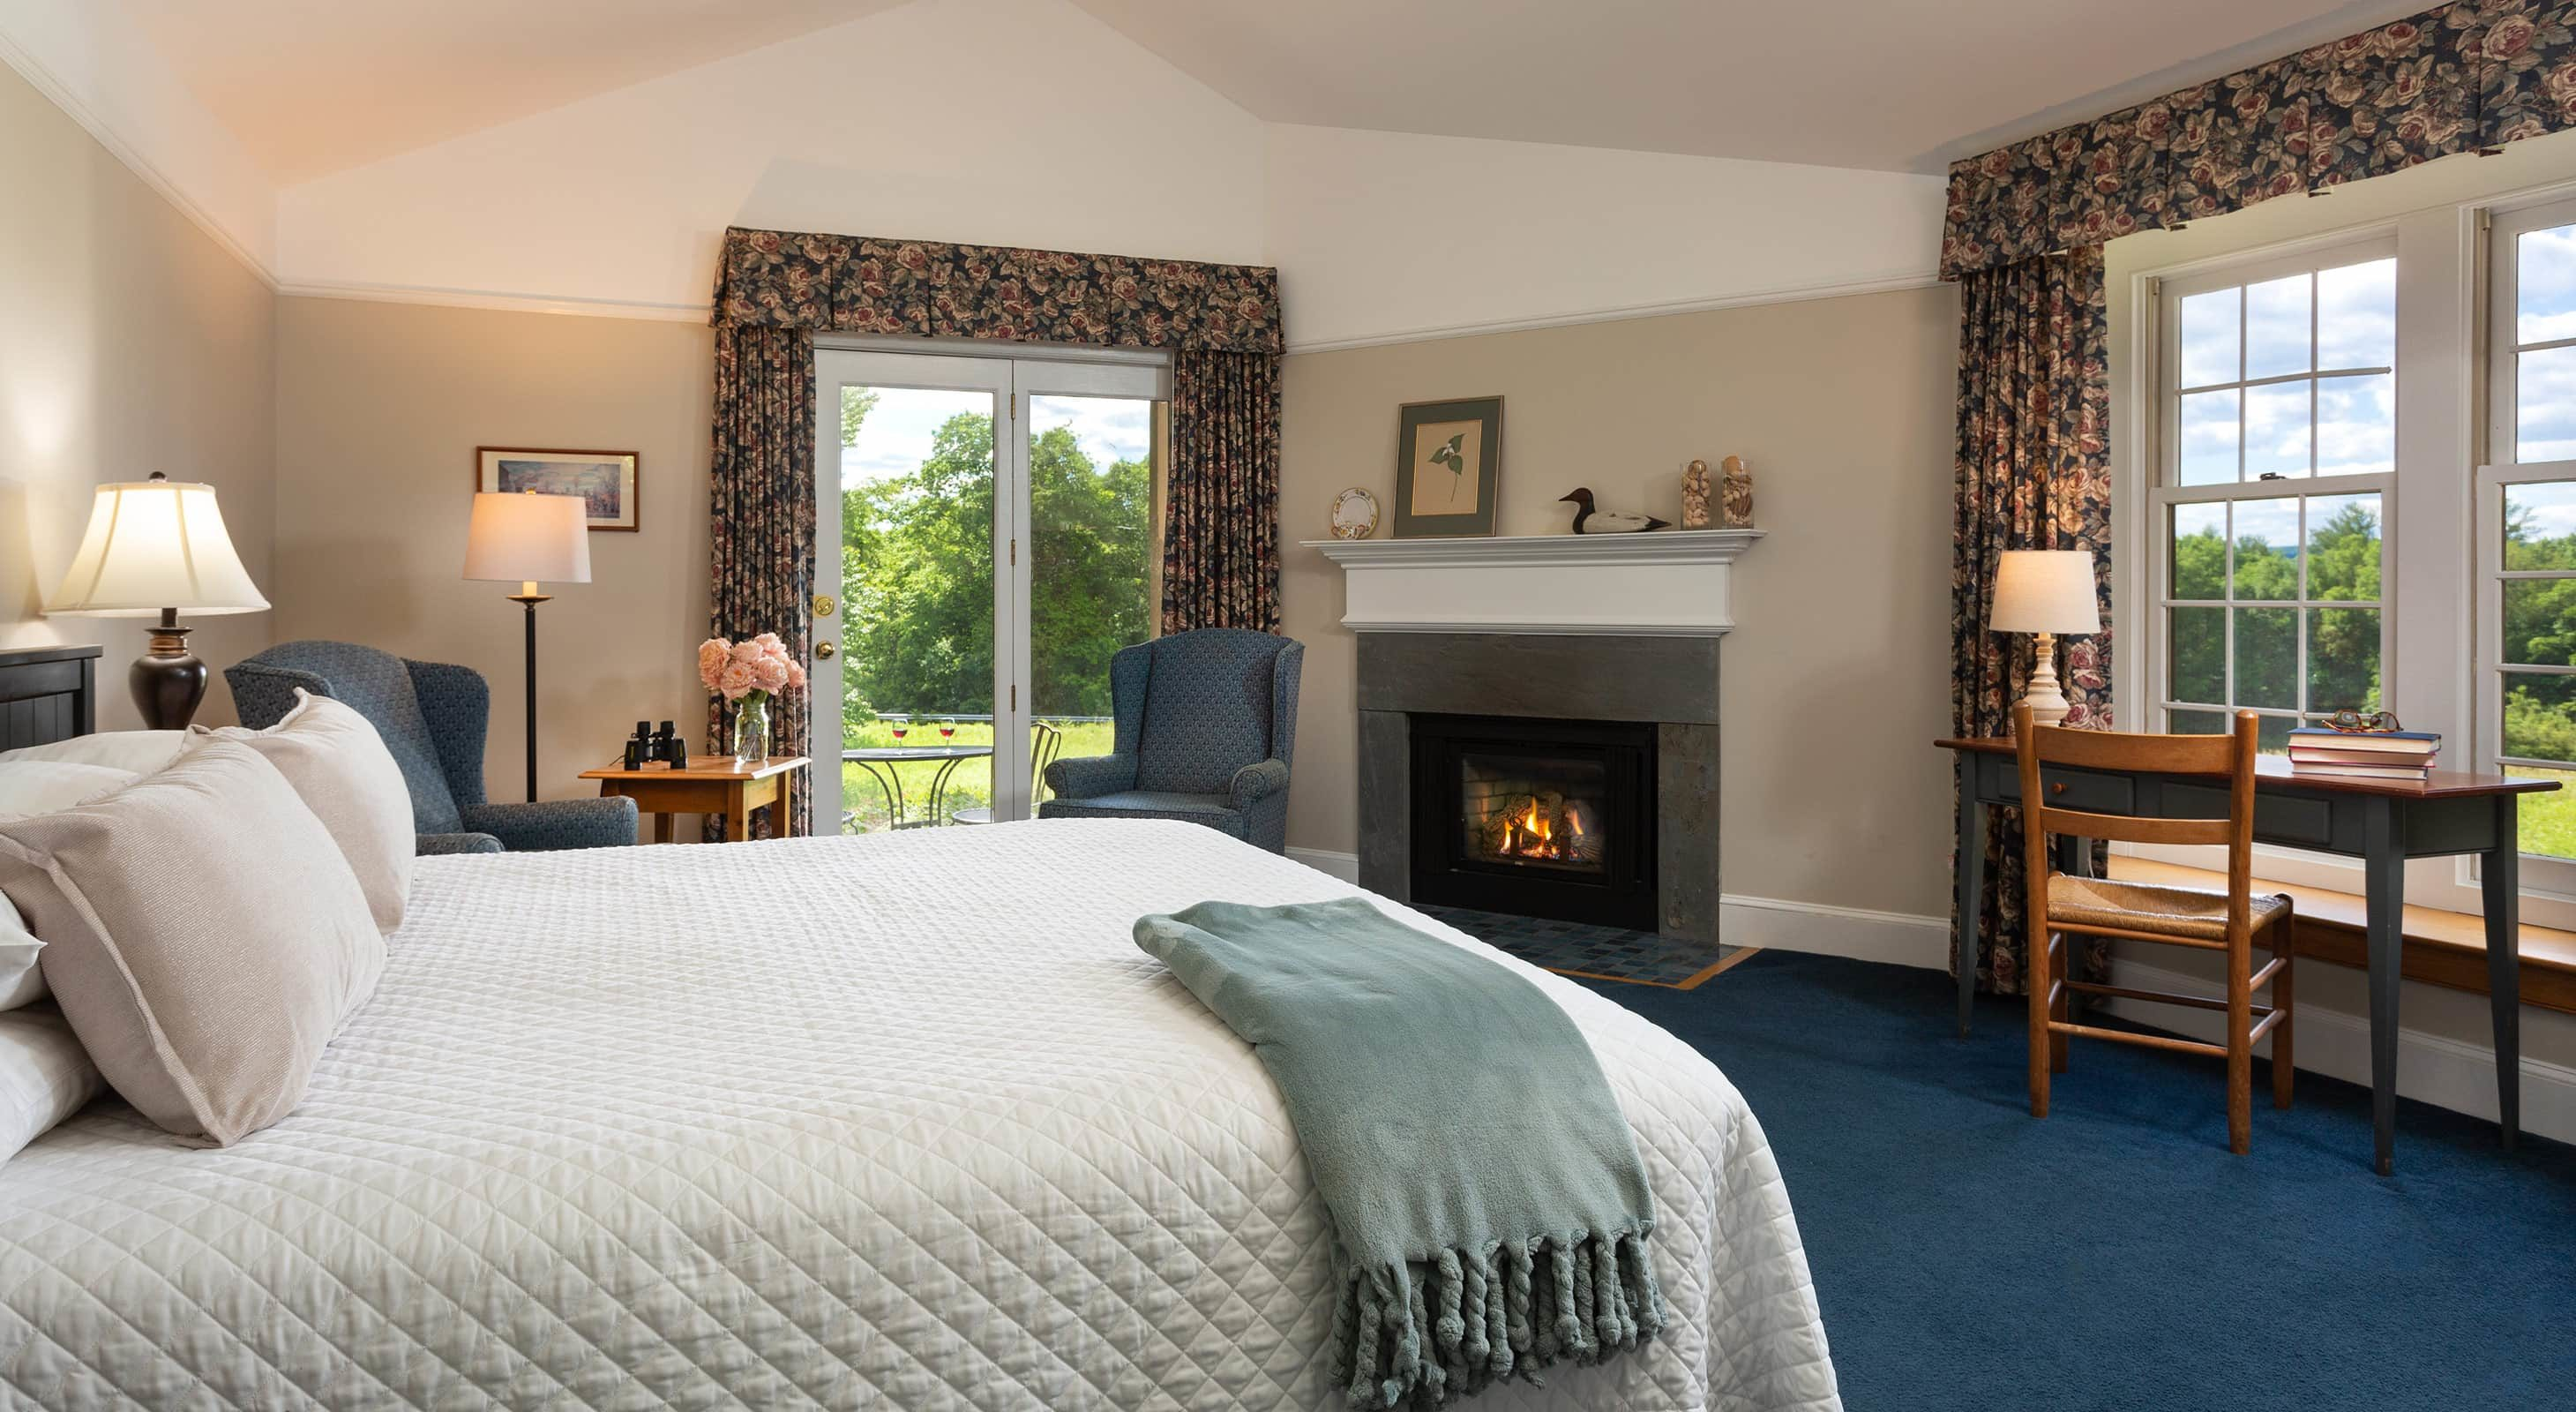 Fireplace and patio view in Room 22 - a romantic NH getaway